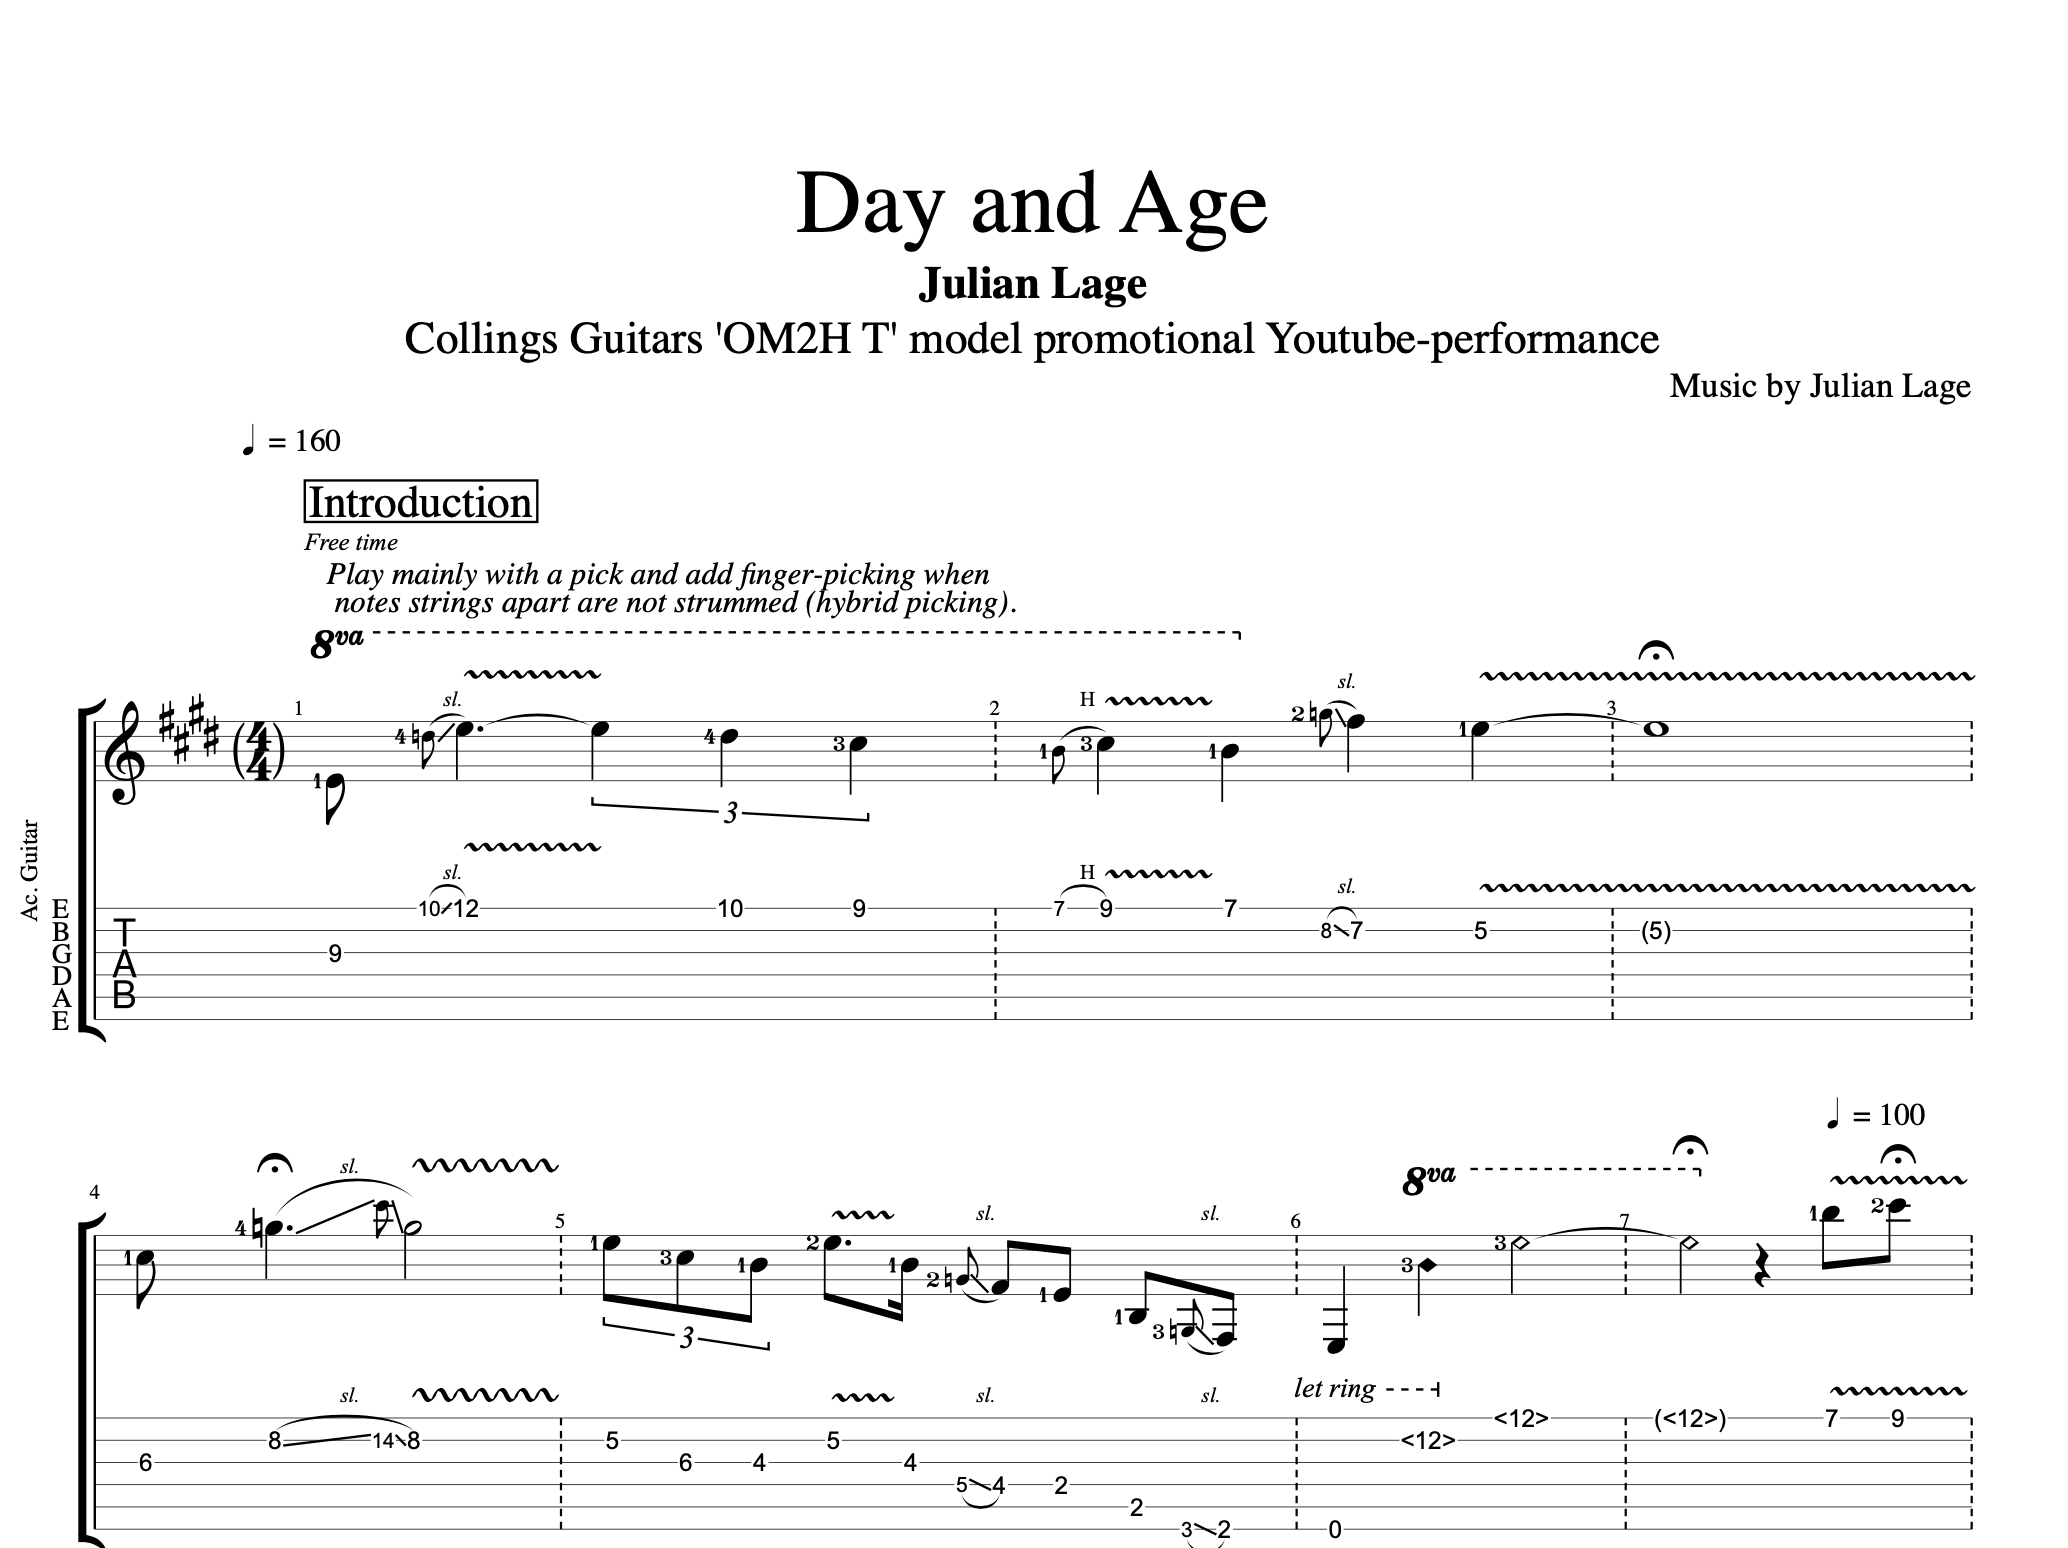 Day And Age Collings Guitars Omh2 T Youtube Promo By Julian Lage Guitar Tabs Sheet Musicscore Chords Play Like The Greats Com